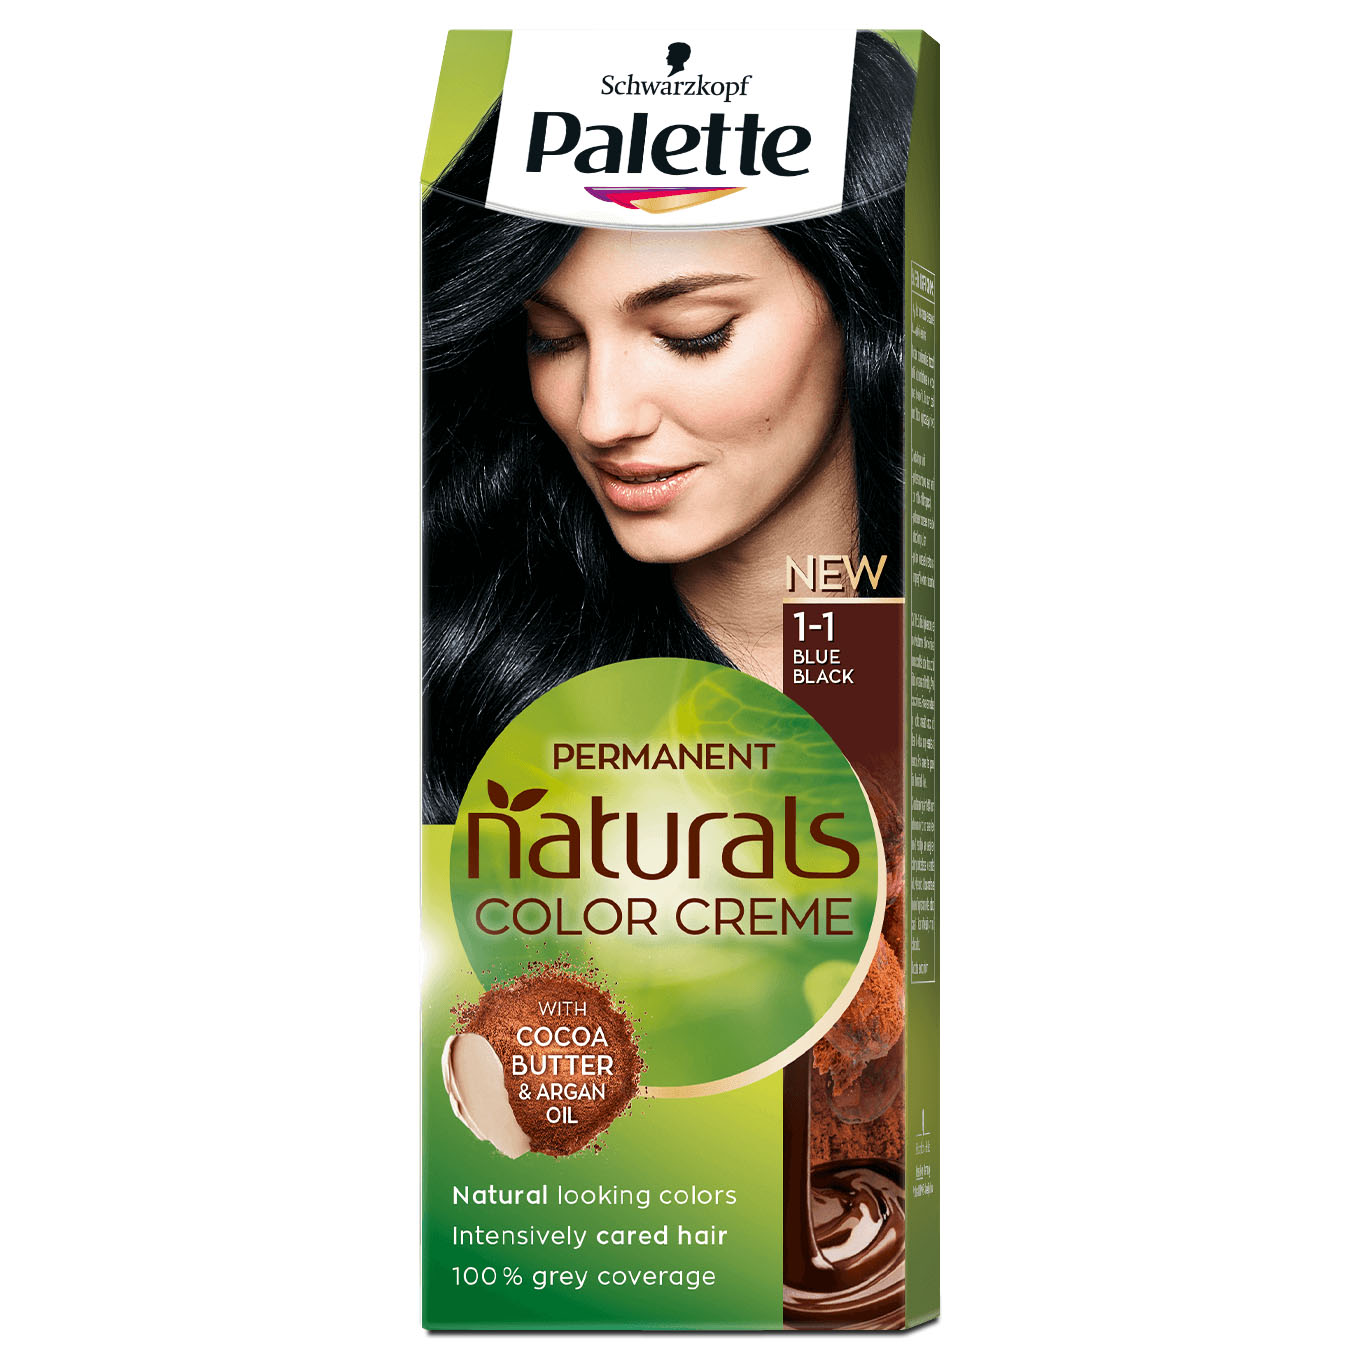 Palette Permanent Naturals Color Creme 909 11 Blue Black \u2013 Peppery Spot